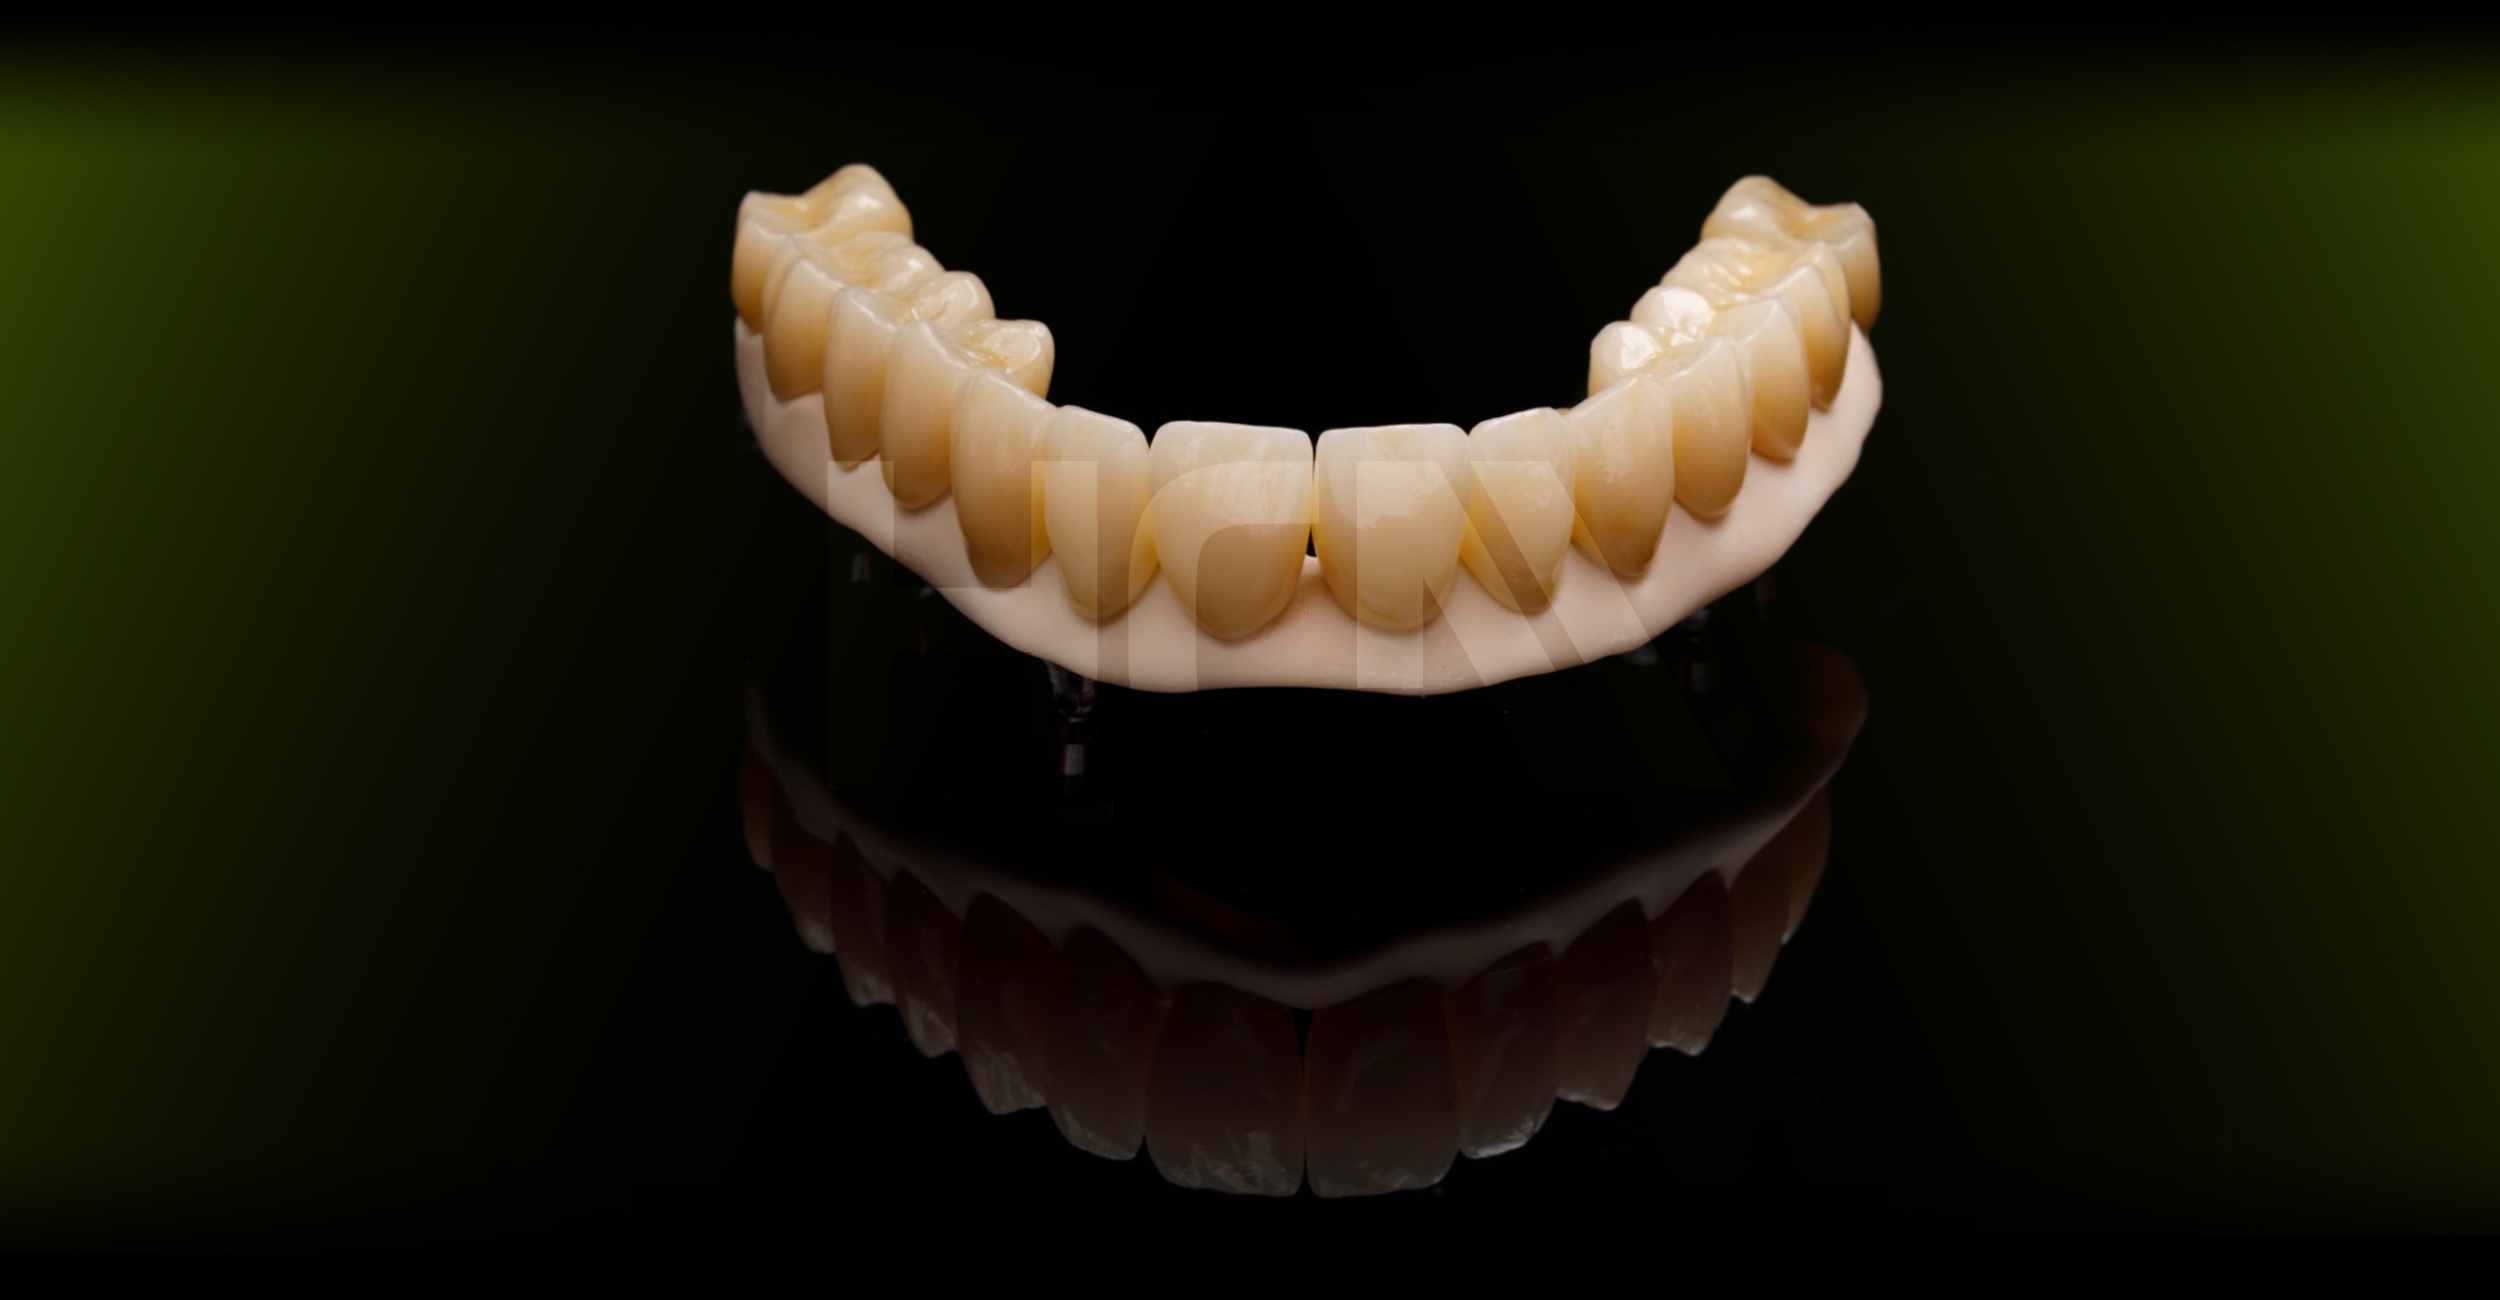 PEEK / Grapheno structure with zirconia crowns